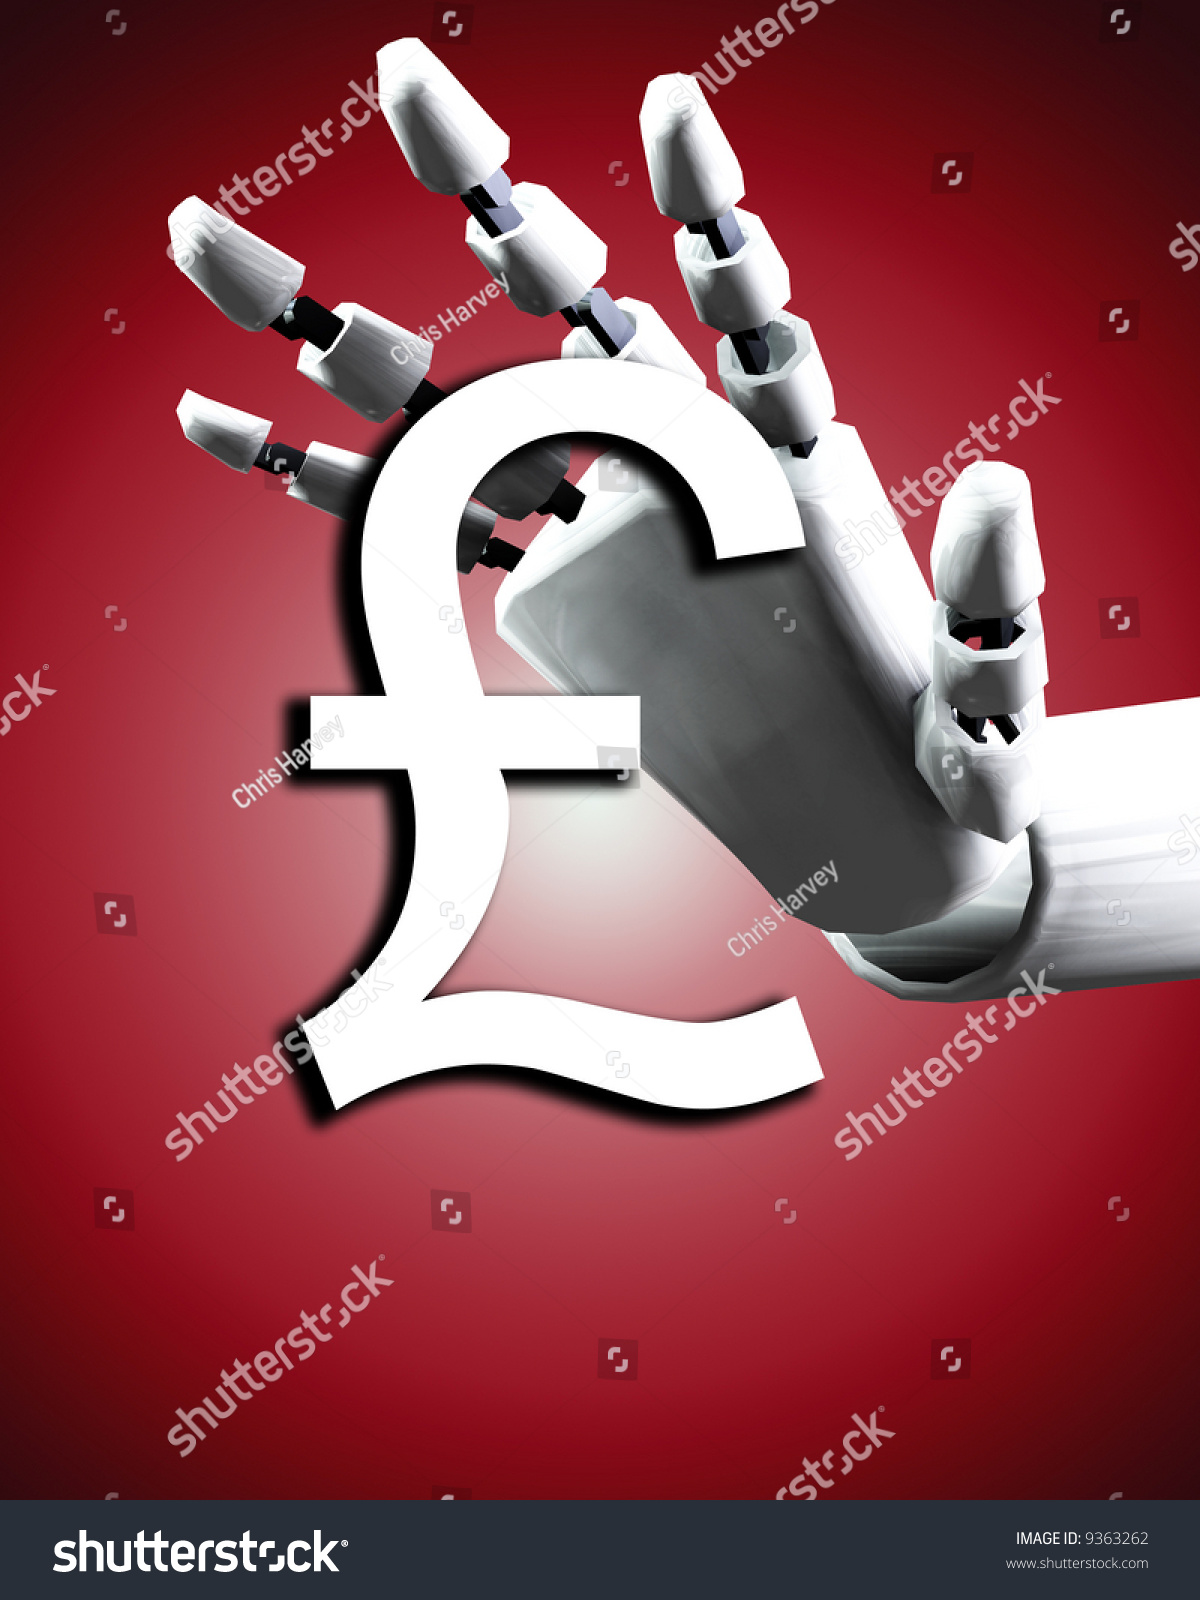 Conceptual Image Robot Hand Pound Would Stock Illustration 9363262